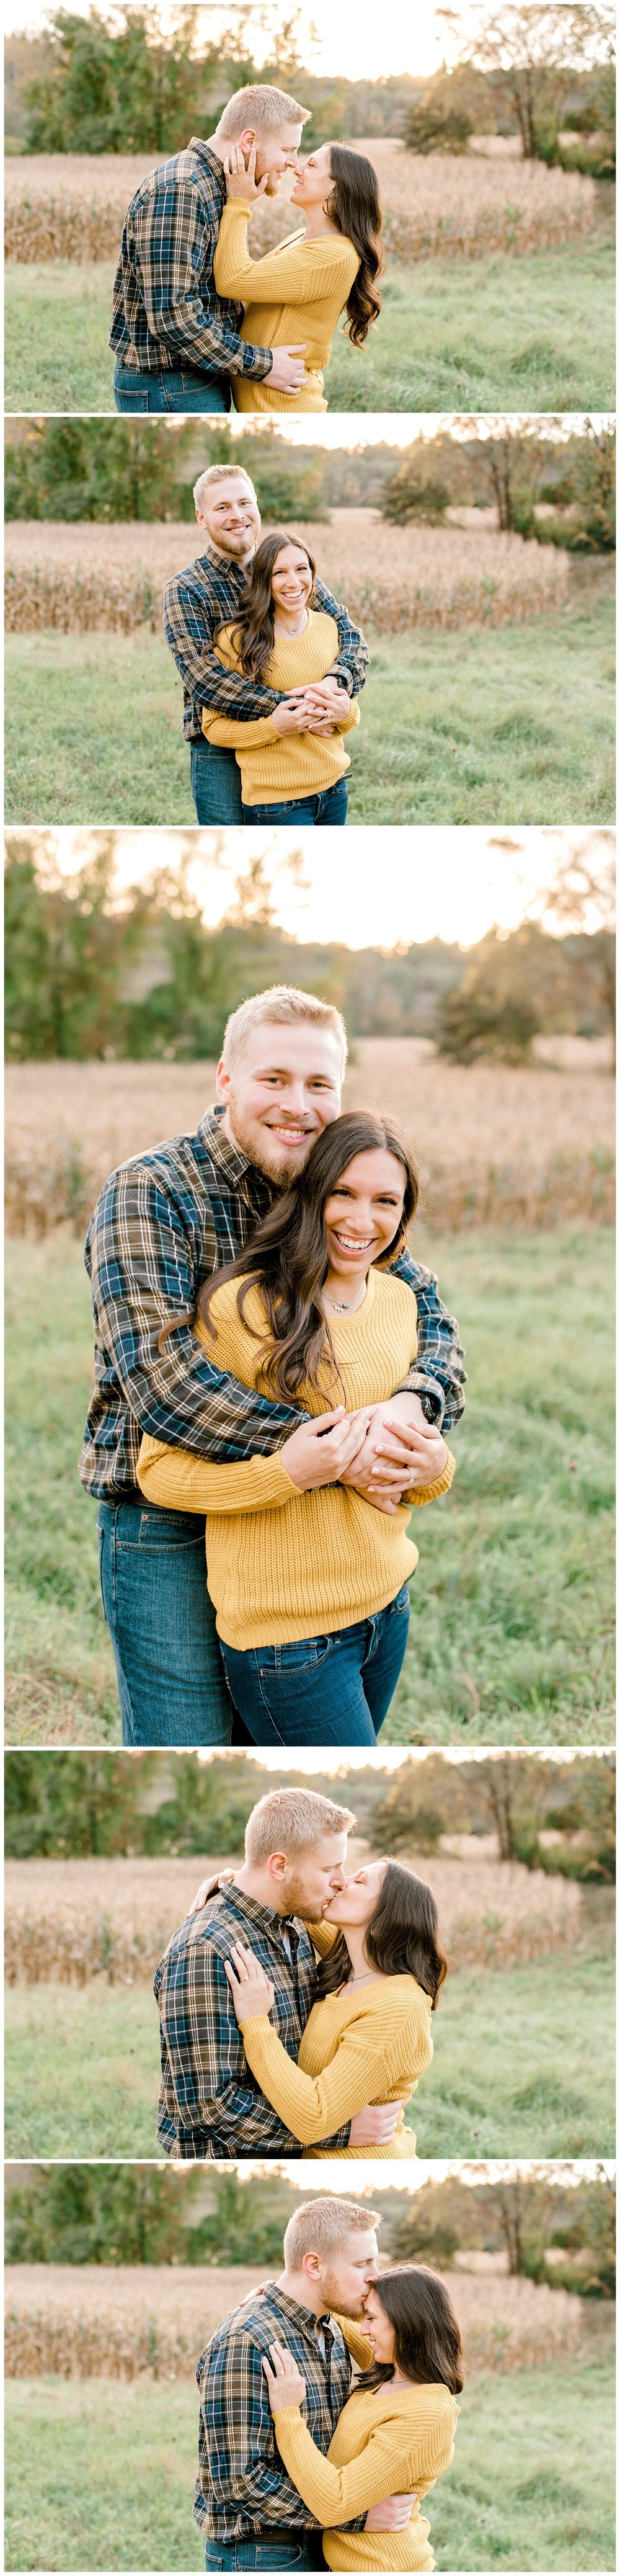 october18-connecticut-engagement-photography-rustic-farm-7.jpg